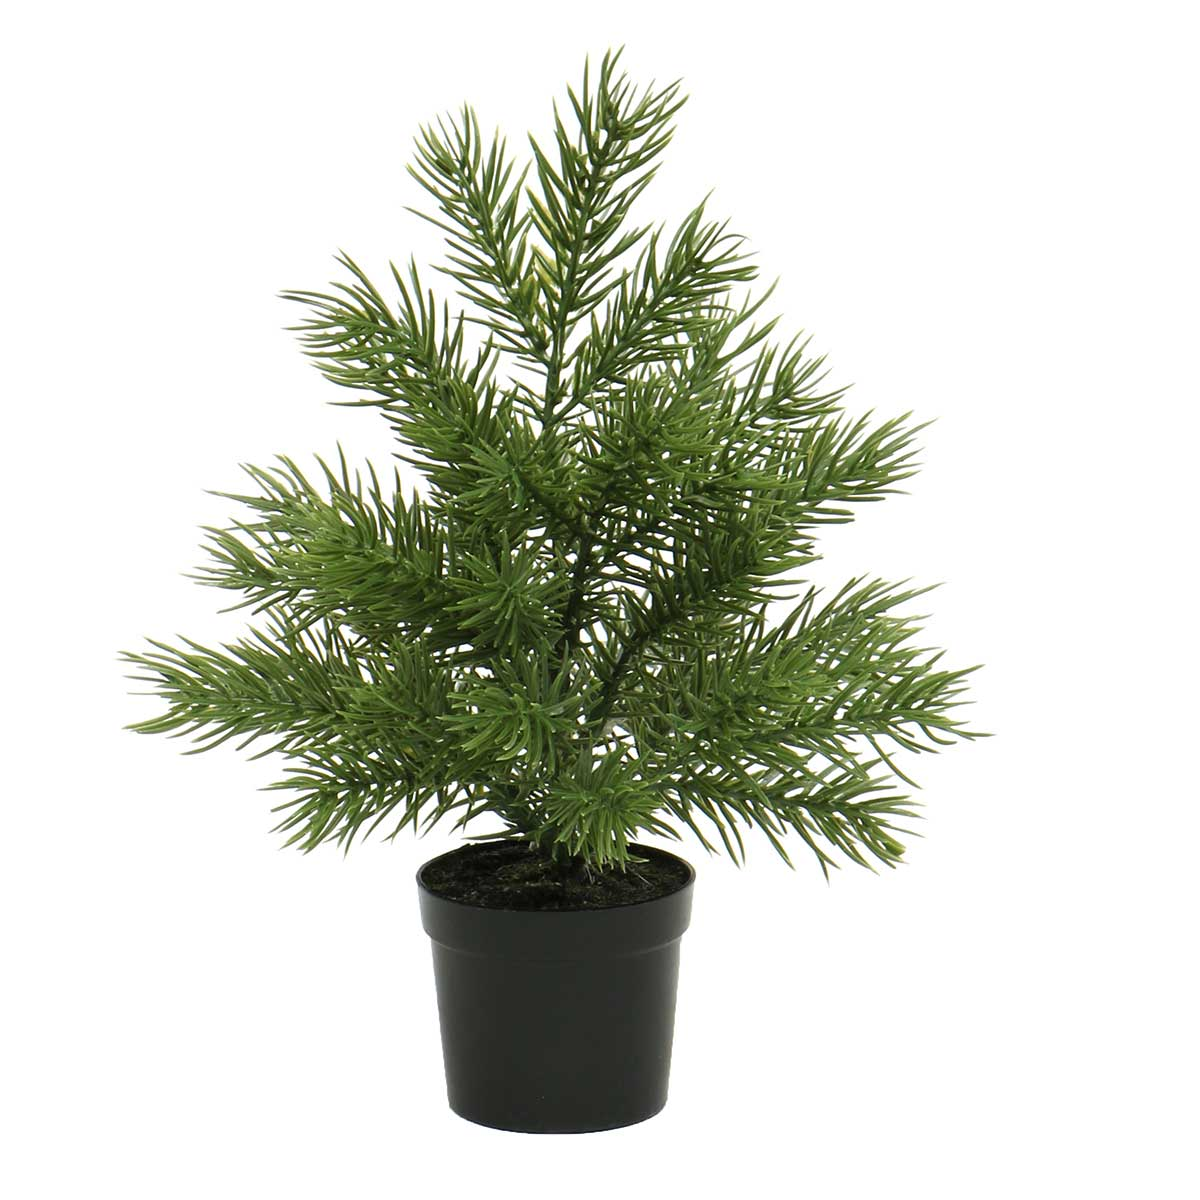 BALSAM FIR TREE IN BLACK